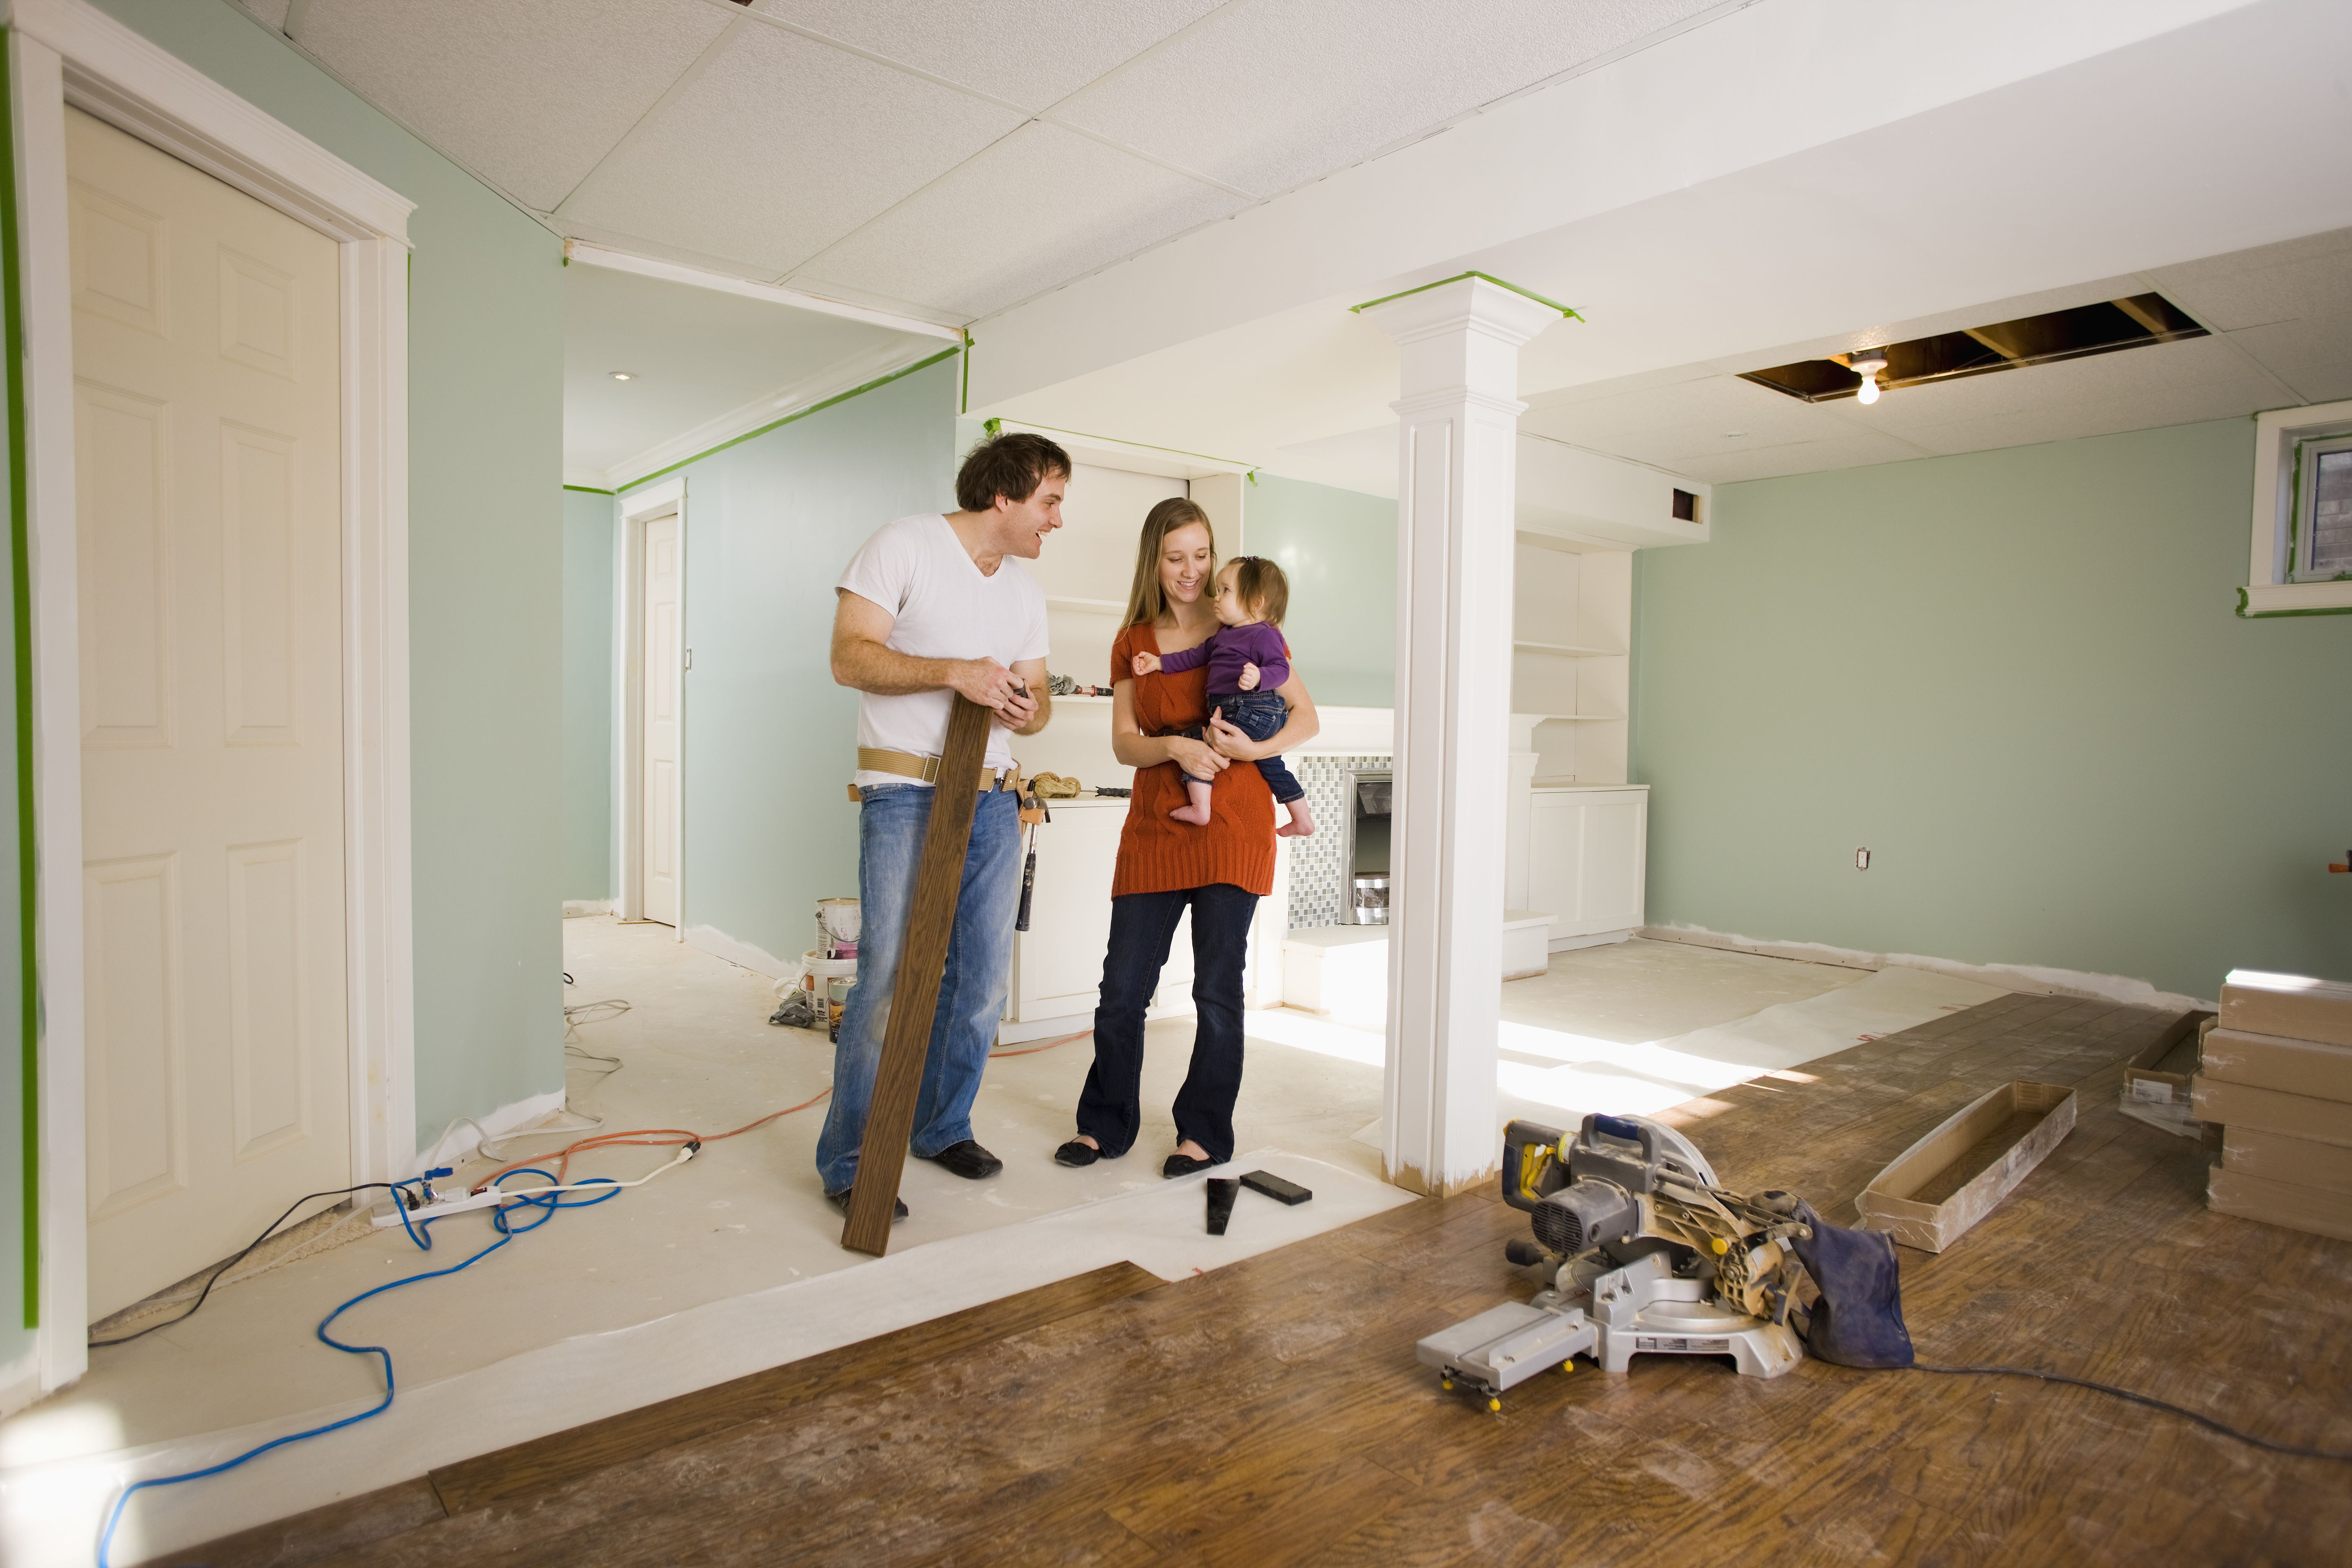 18 Unique Engineered Hardwood Flooring for Basement 2021 free download engineered hardwood flooring for basement of basement flooring options for any home inside couple with 11 month old daughter in their basement that is being finished 527925478 582c93865f9b58